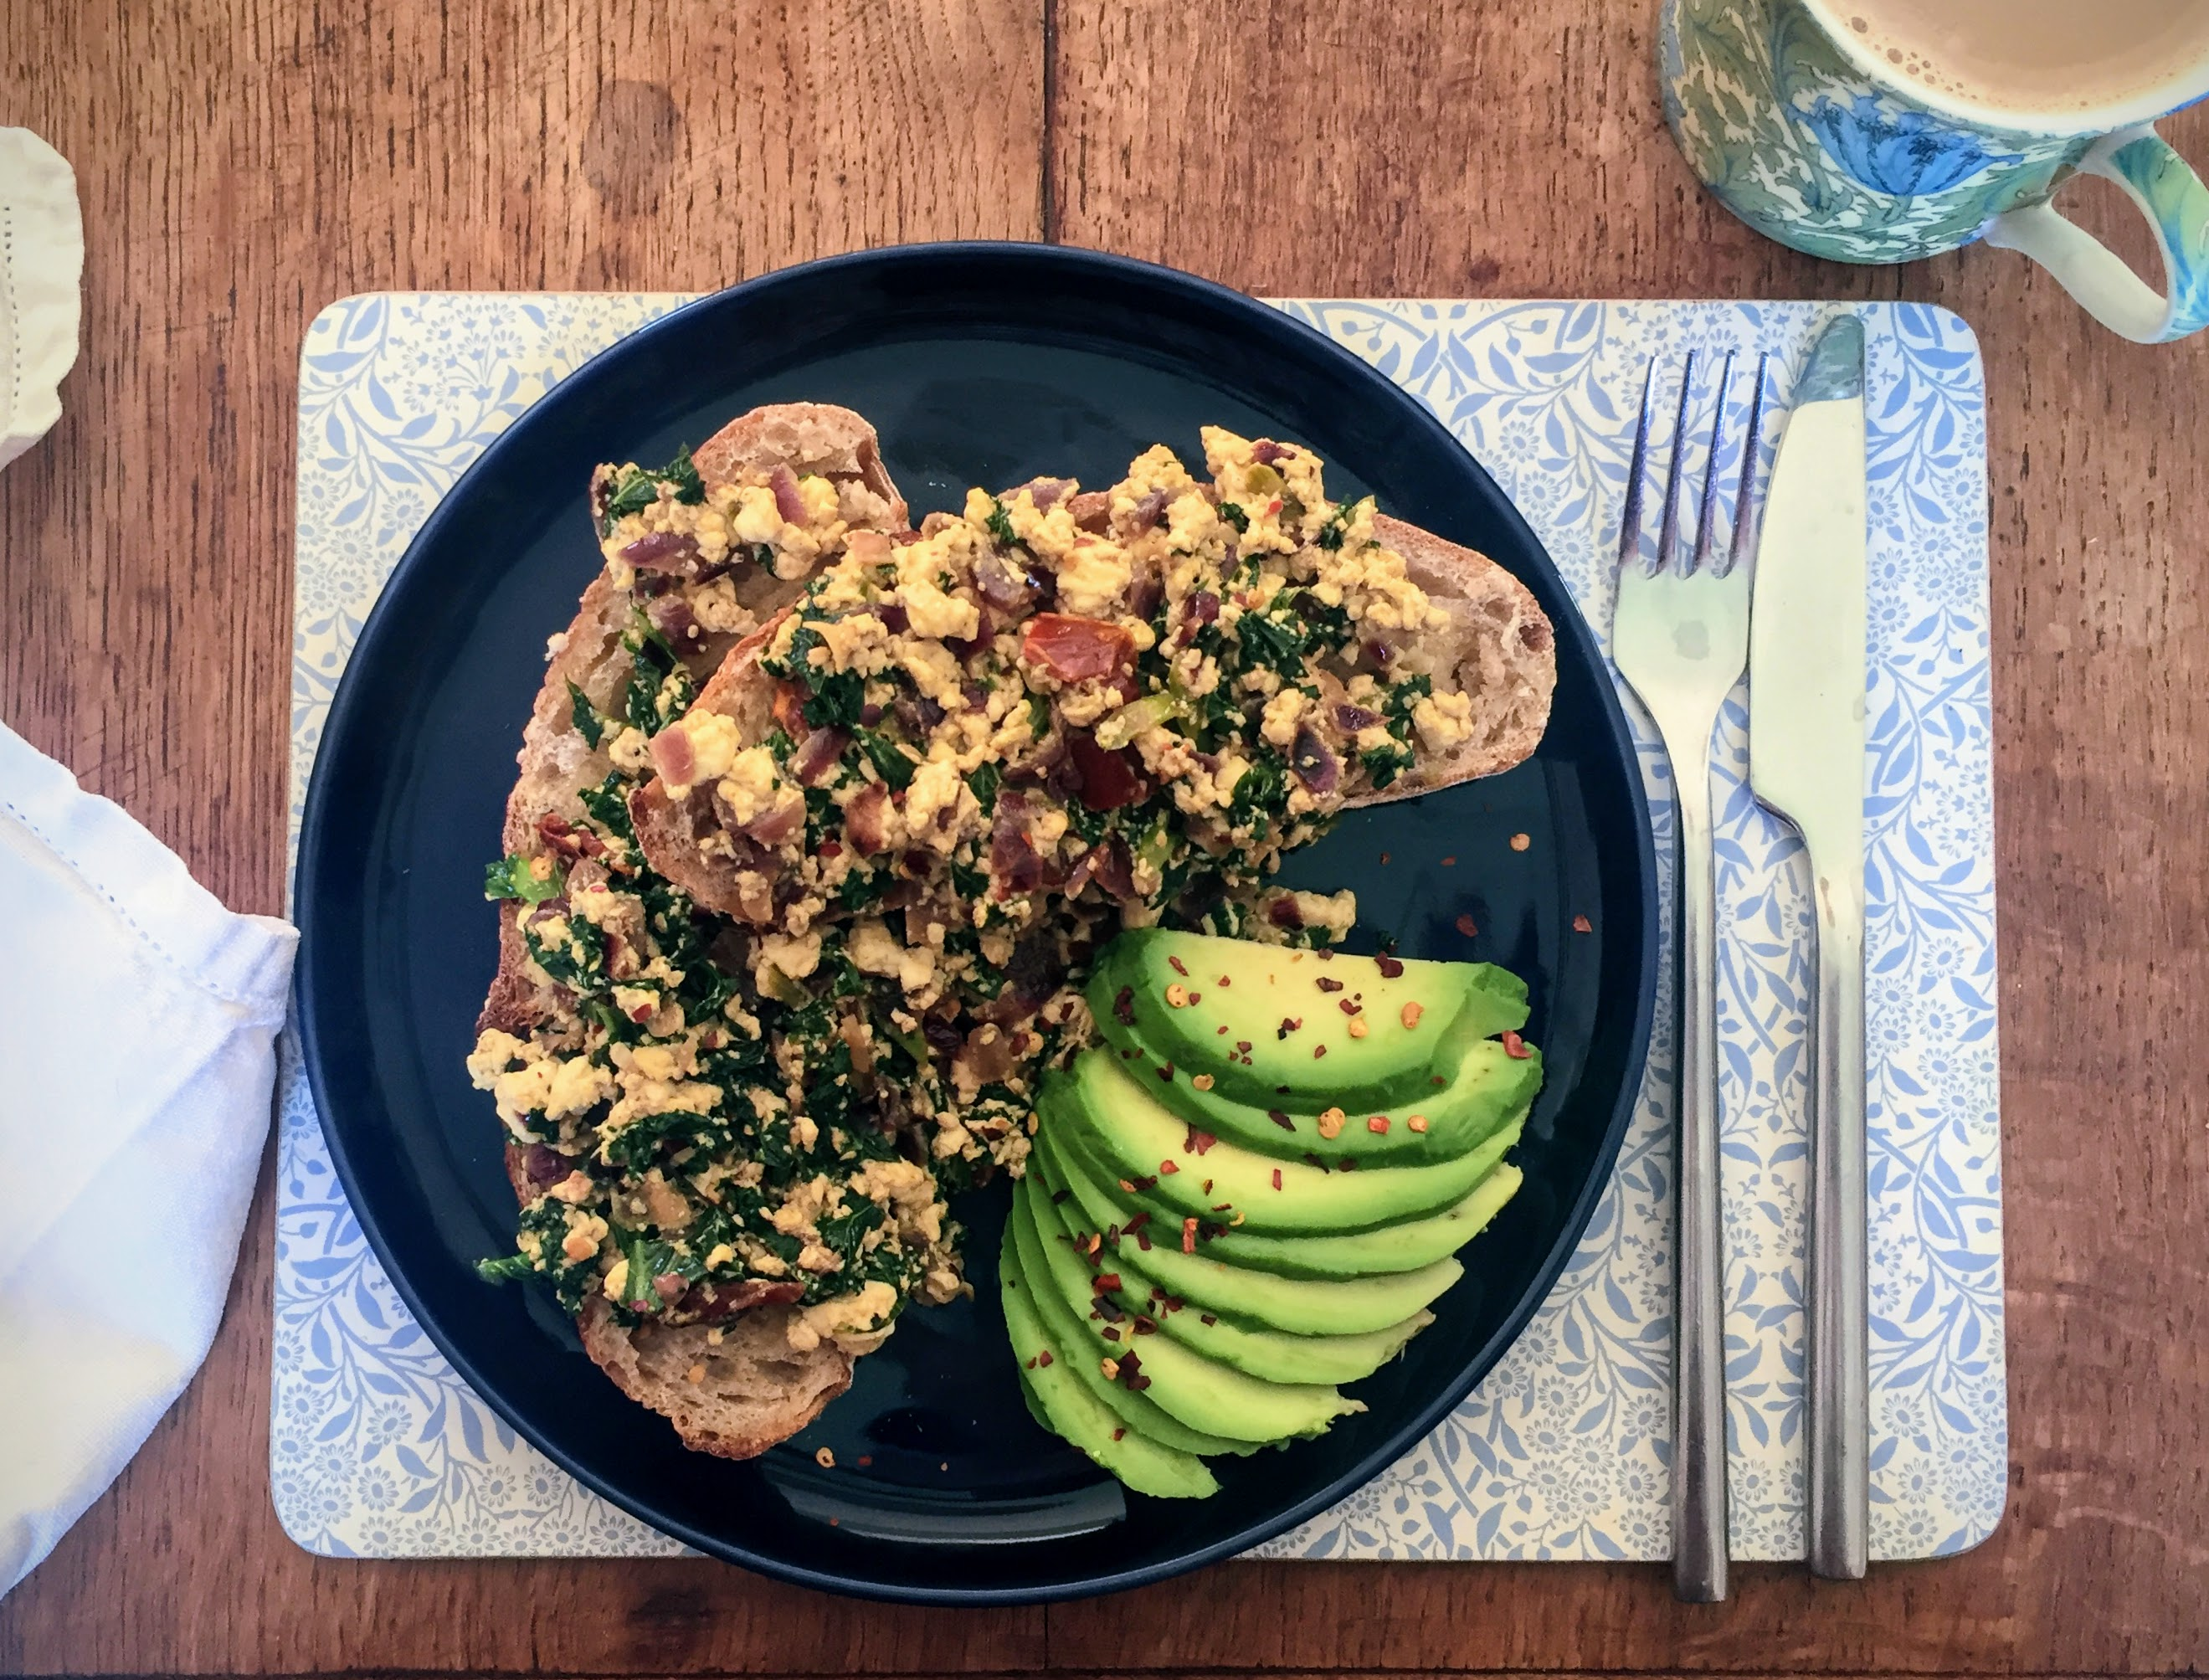 Tofu scramble with sun-dried tomato  and kale, piled on two slices of toasted sourdough, with finely sliced avocado on the side. It is on a dark navy blue plate, and photographed from above, with a napkin and cup of coffee in the corners of the picture.